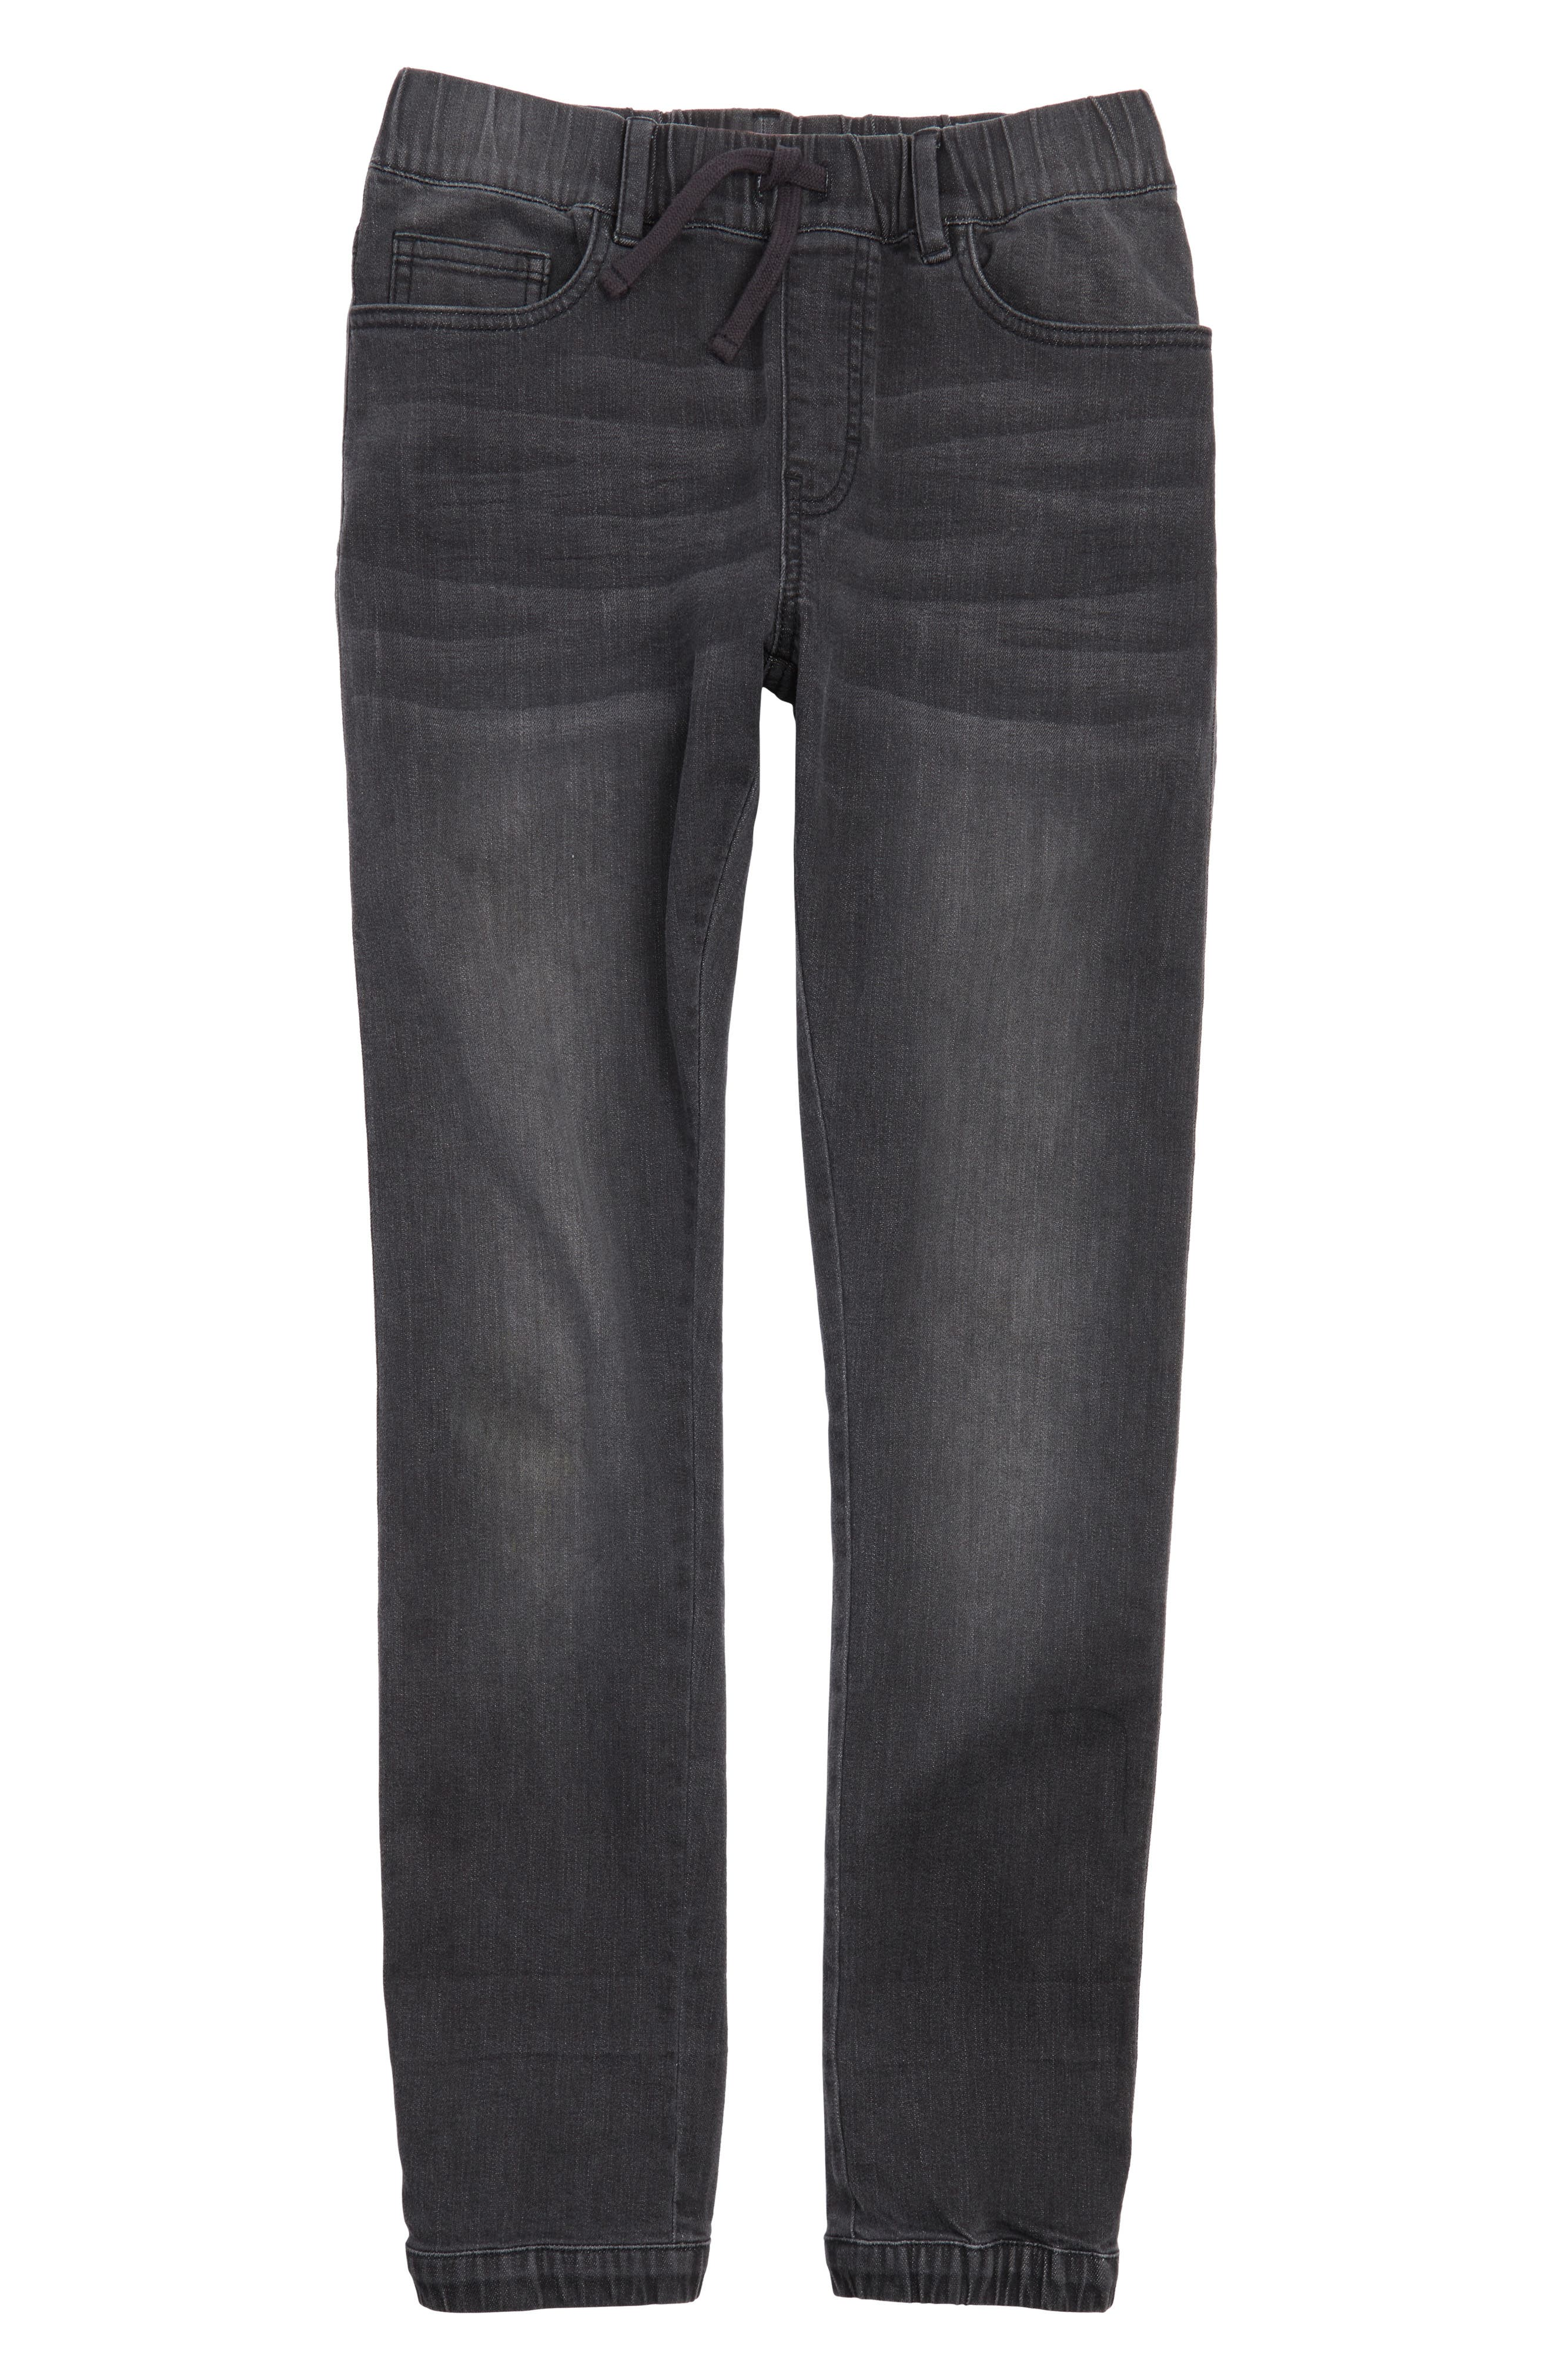 Tucker + Tate Denim Jogger Pants (Big Boys)